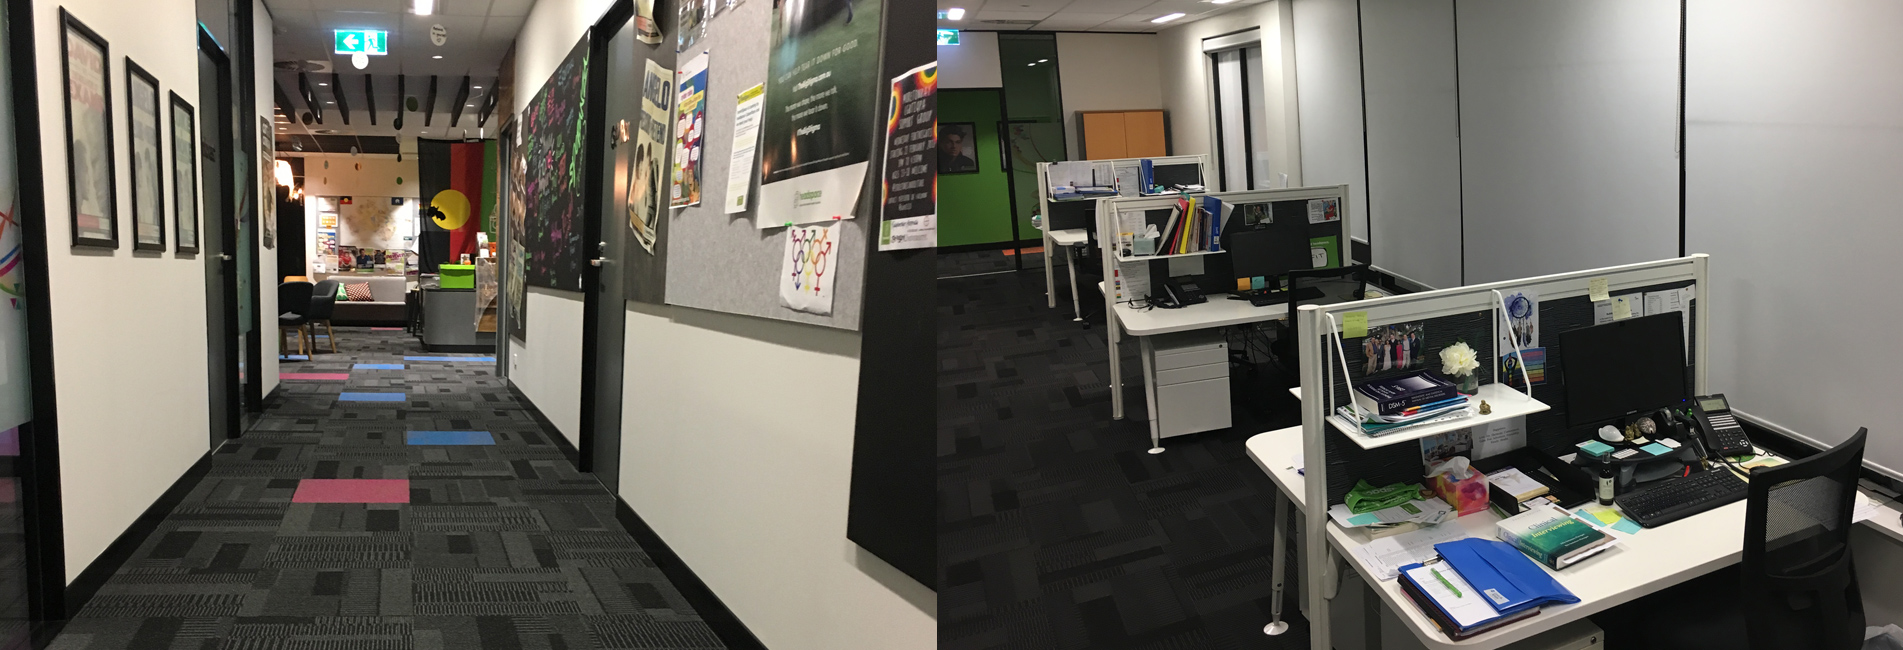 Office Cleaning Lawnton, Commercial Cleaning QLD, Vinyl Floor Sealing Warner, Stripping & Sealing Bray Park, Child Care Cleaning Strathpine, Medical Centre Cleaning Joyner